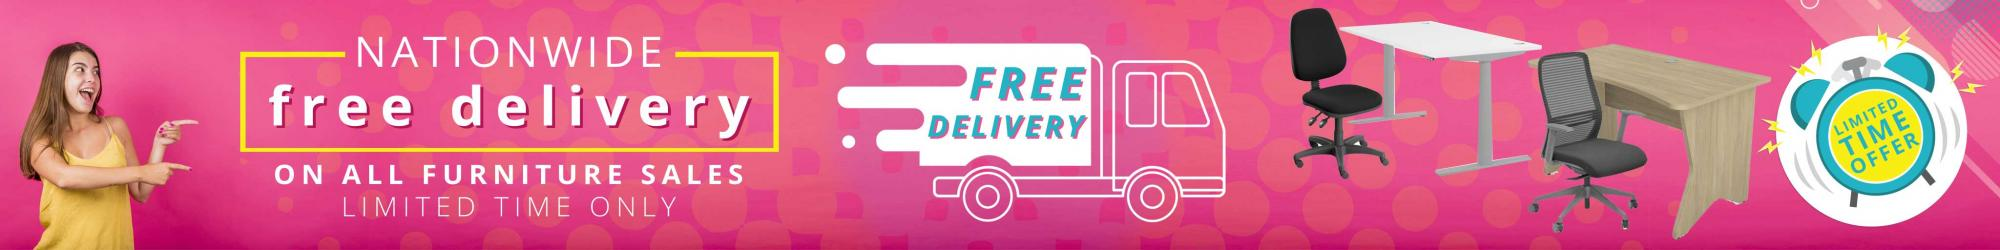 free delivery on furniture